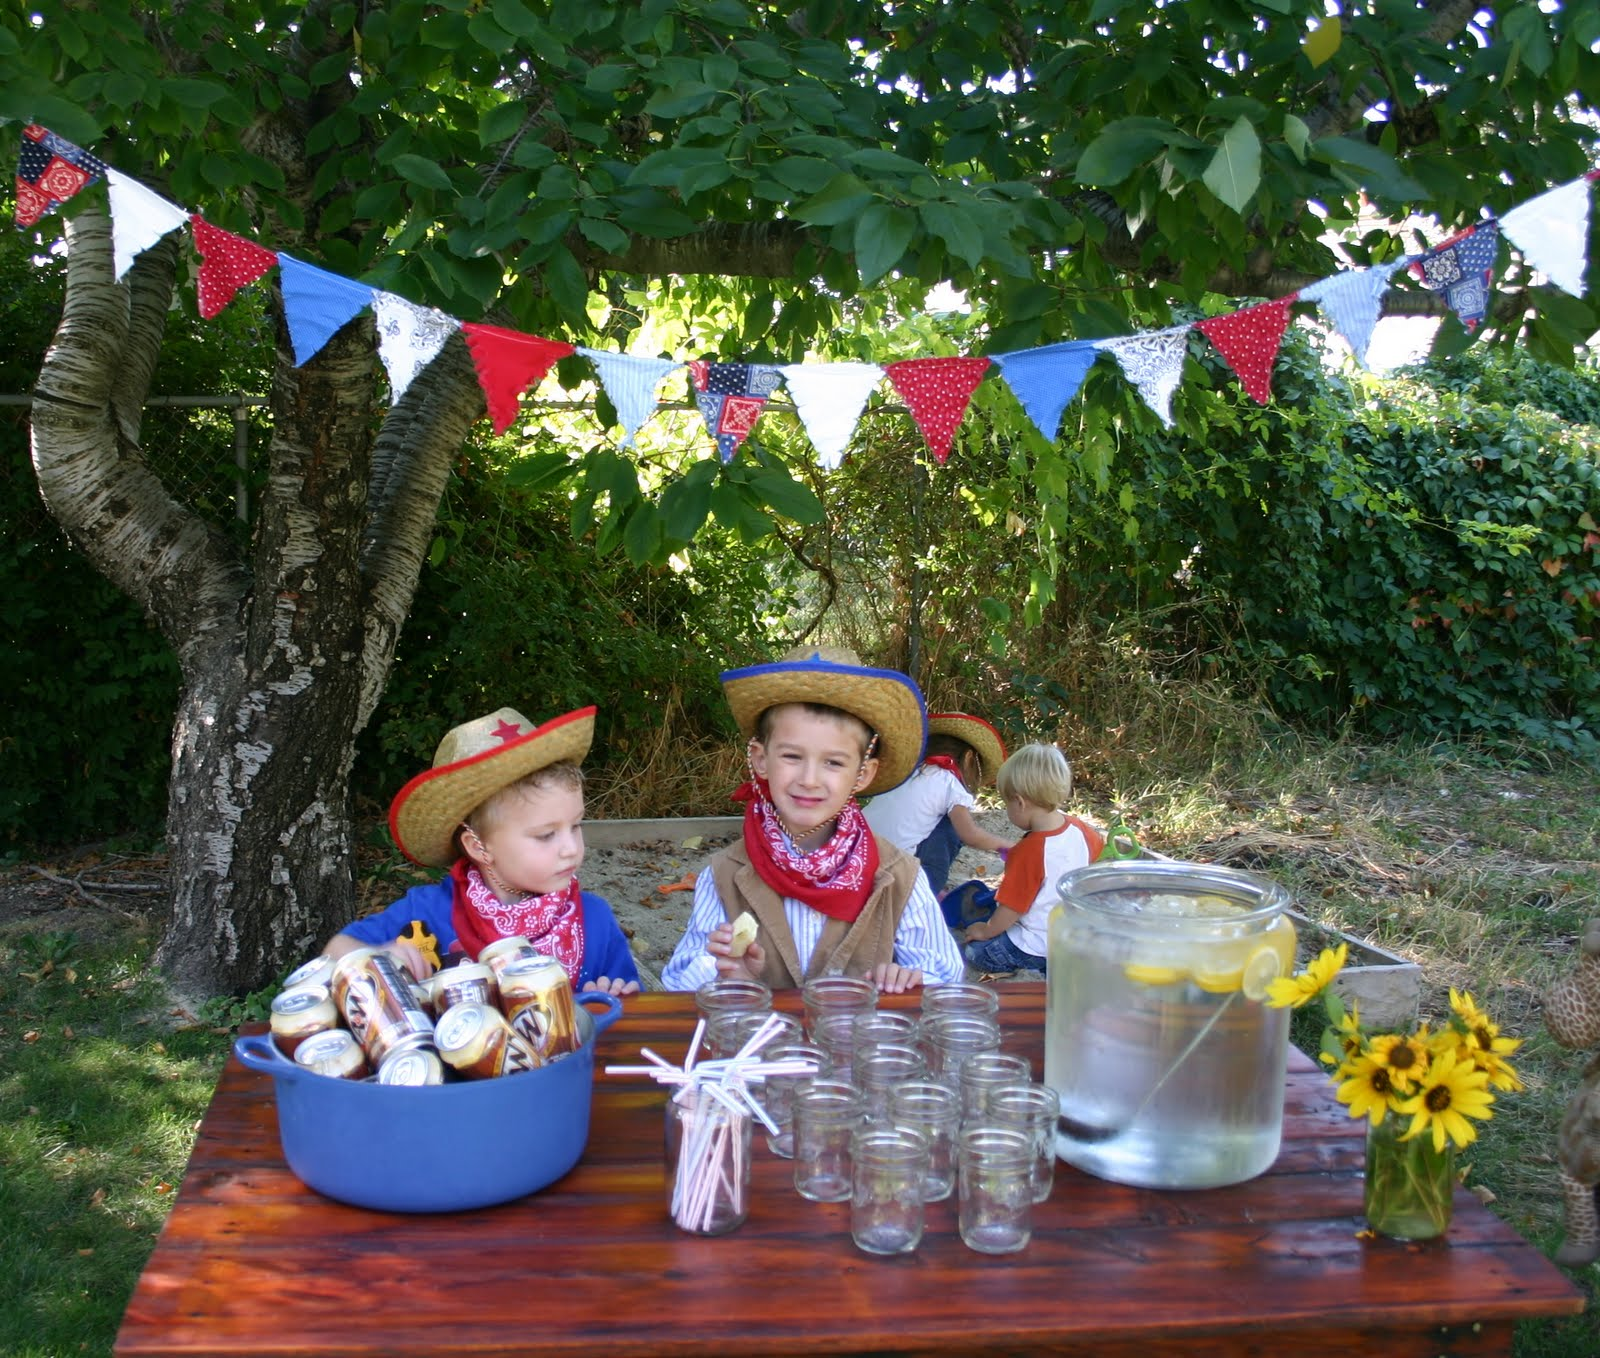 Cowboy Snack Ideas http://shopbonnenouvelle.blogspot.com/2009/09/homemade-kids-cowboy-birthday-party.html